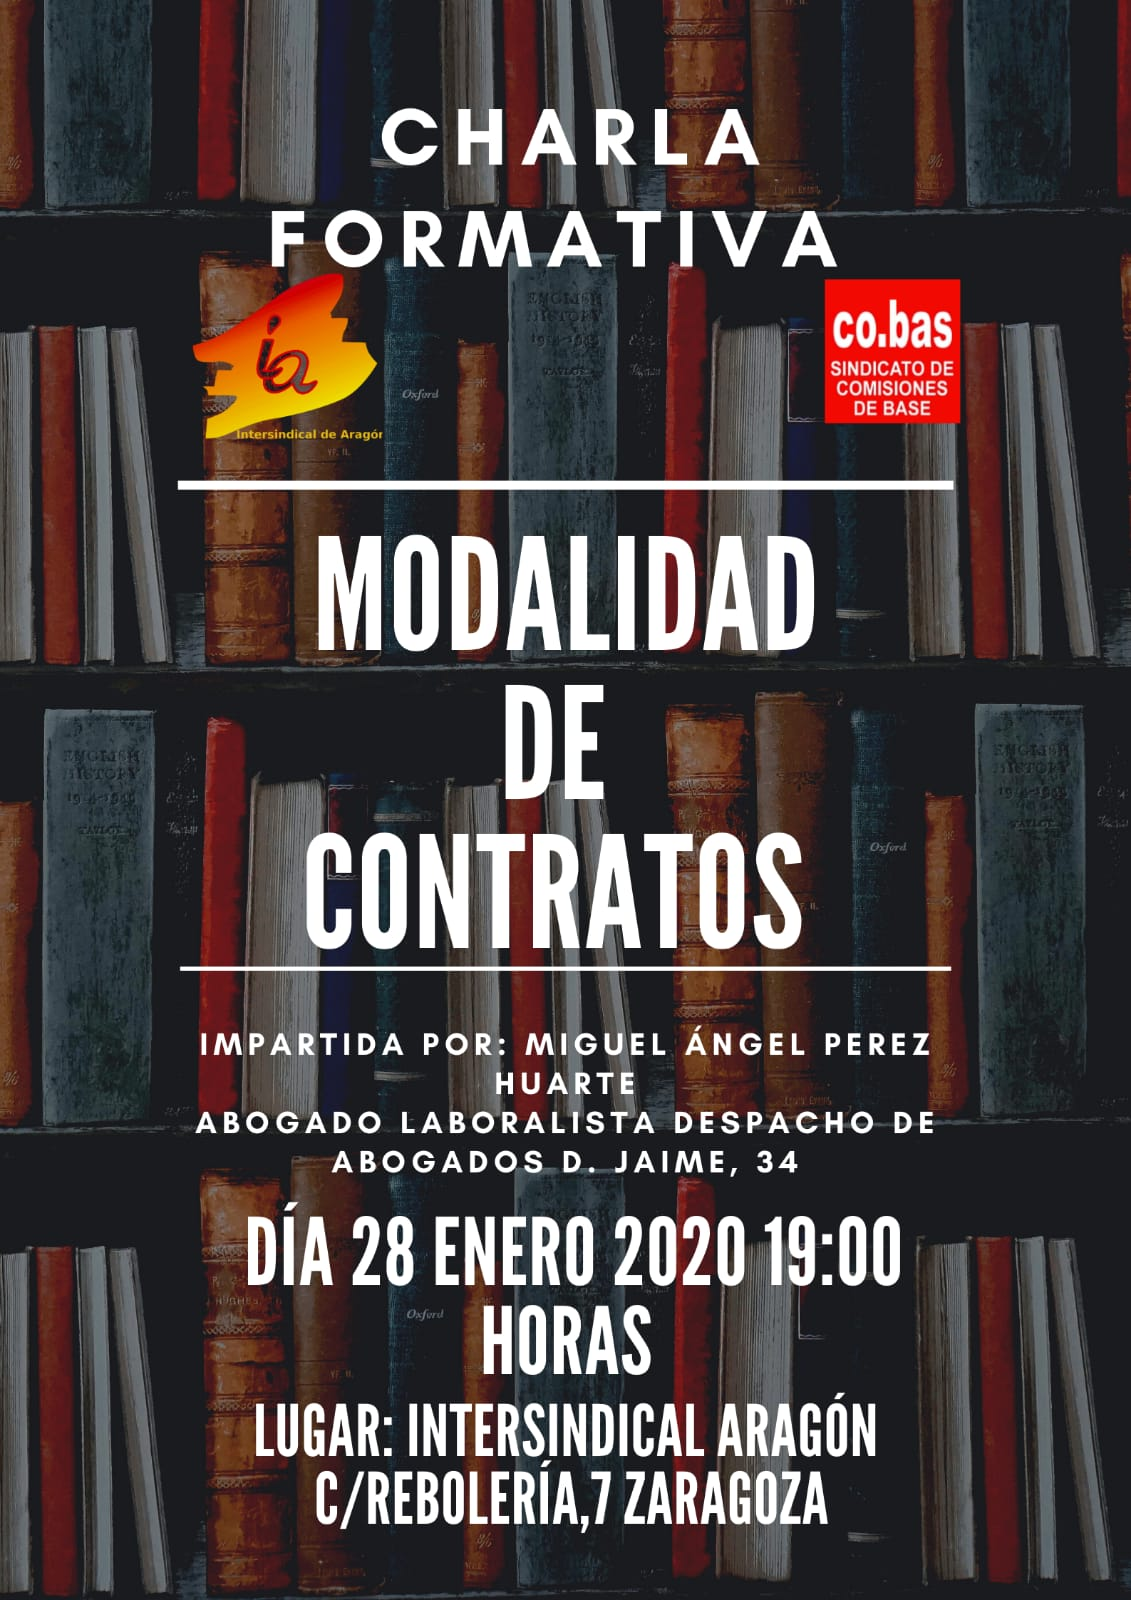 Charla formativa.»MODALIDAD DE CONTRATOS». 28 E. En el local de Intersindical de Aragón-CO.BAS